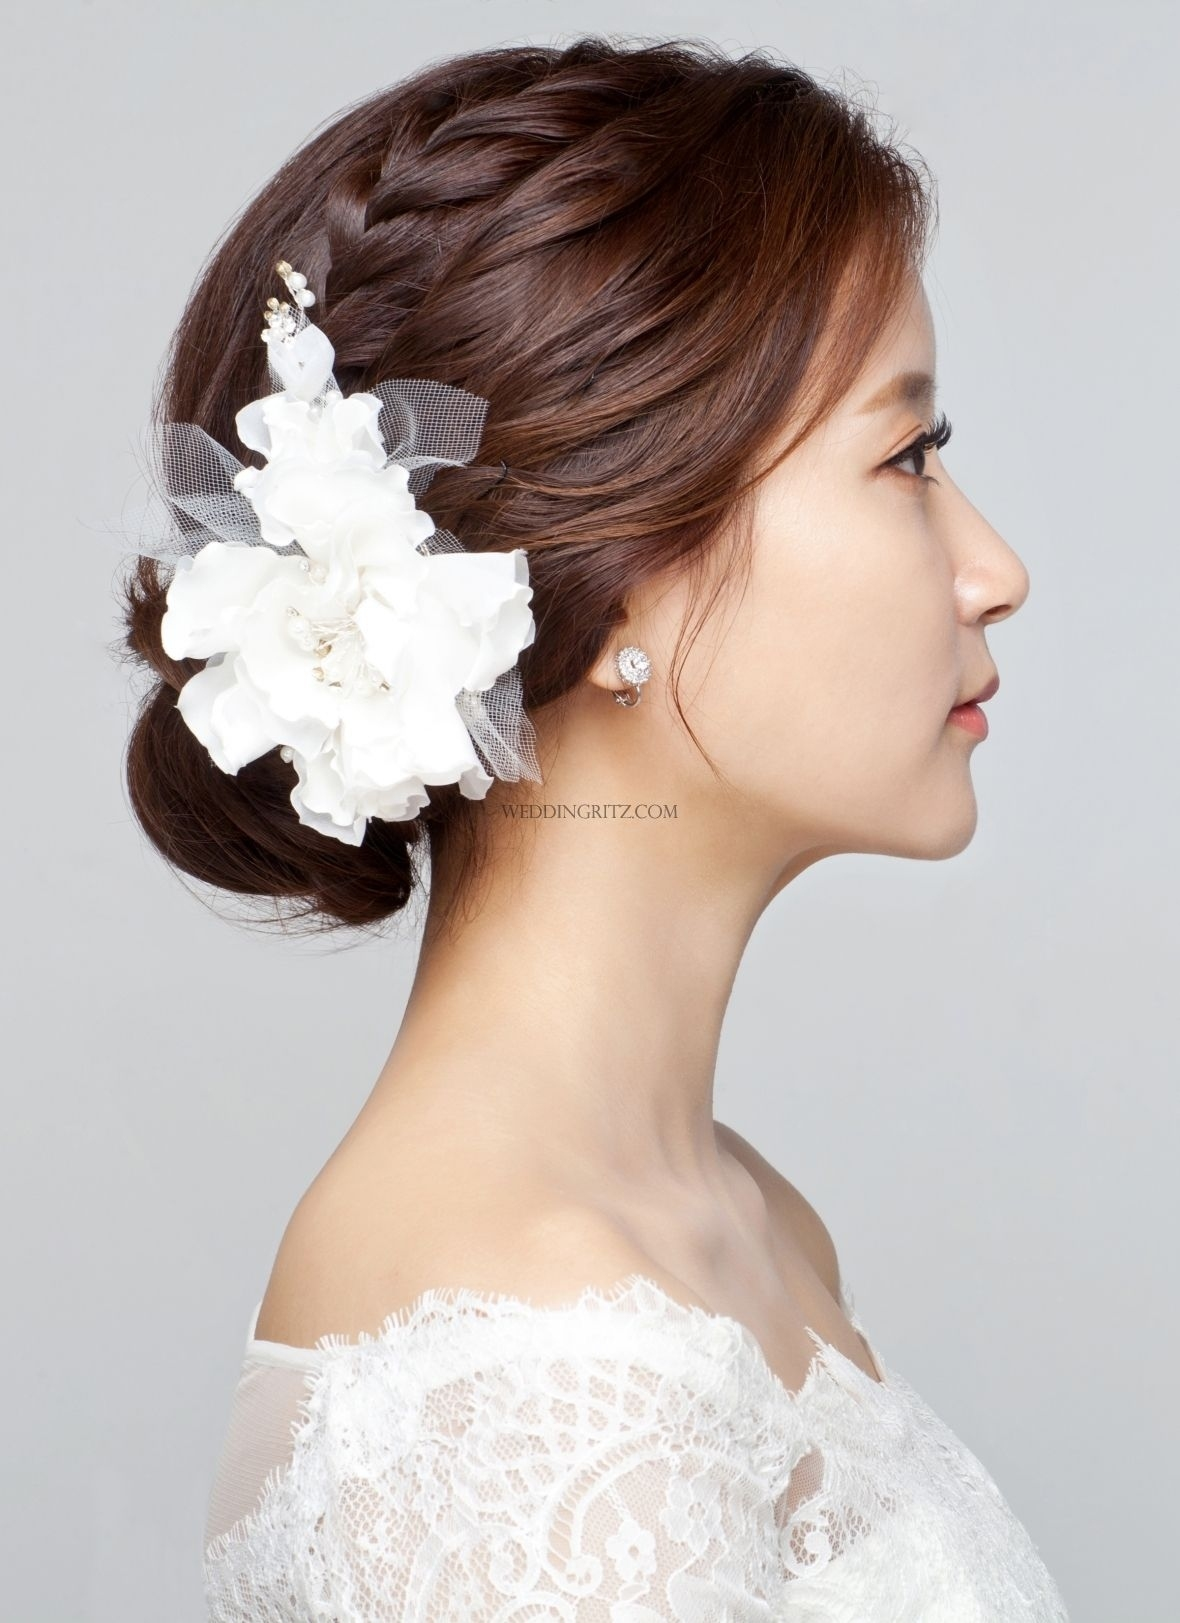 Pin By Hailing Lee On Weddings - Asia Bridal In 2019 | Hairdo within Amazing Wedding Hairstyles For Asian Hair